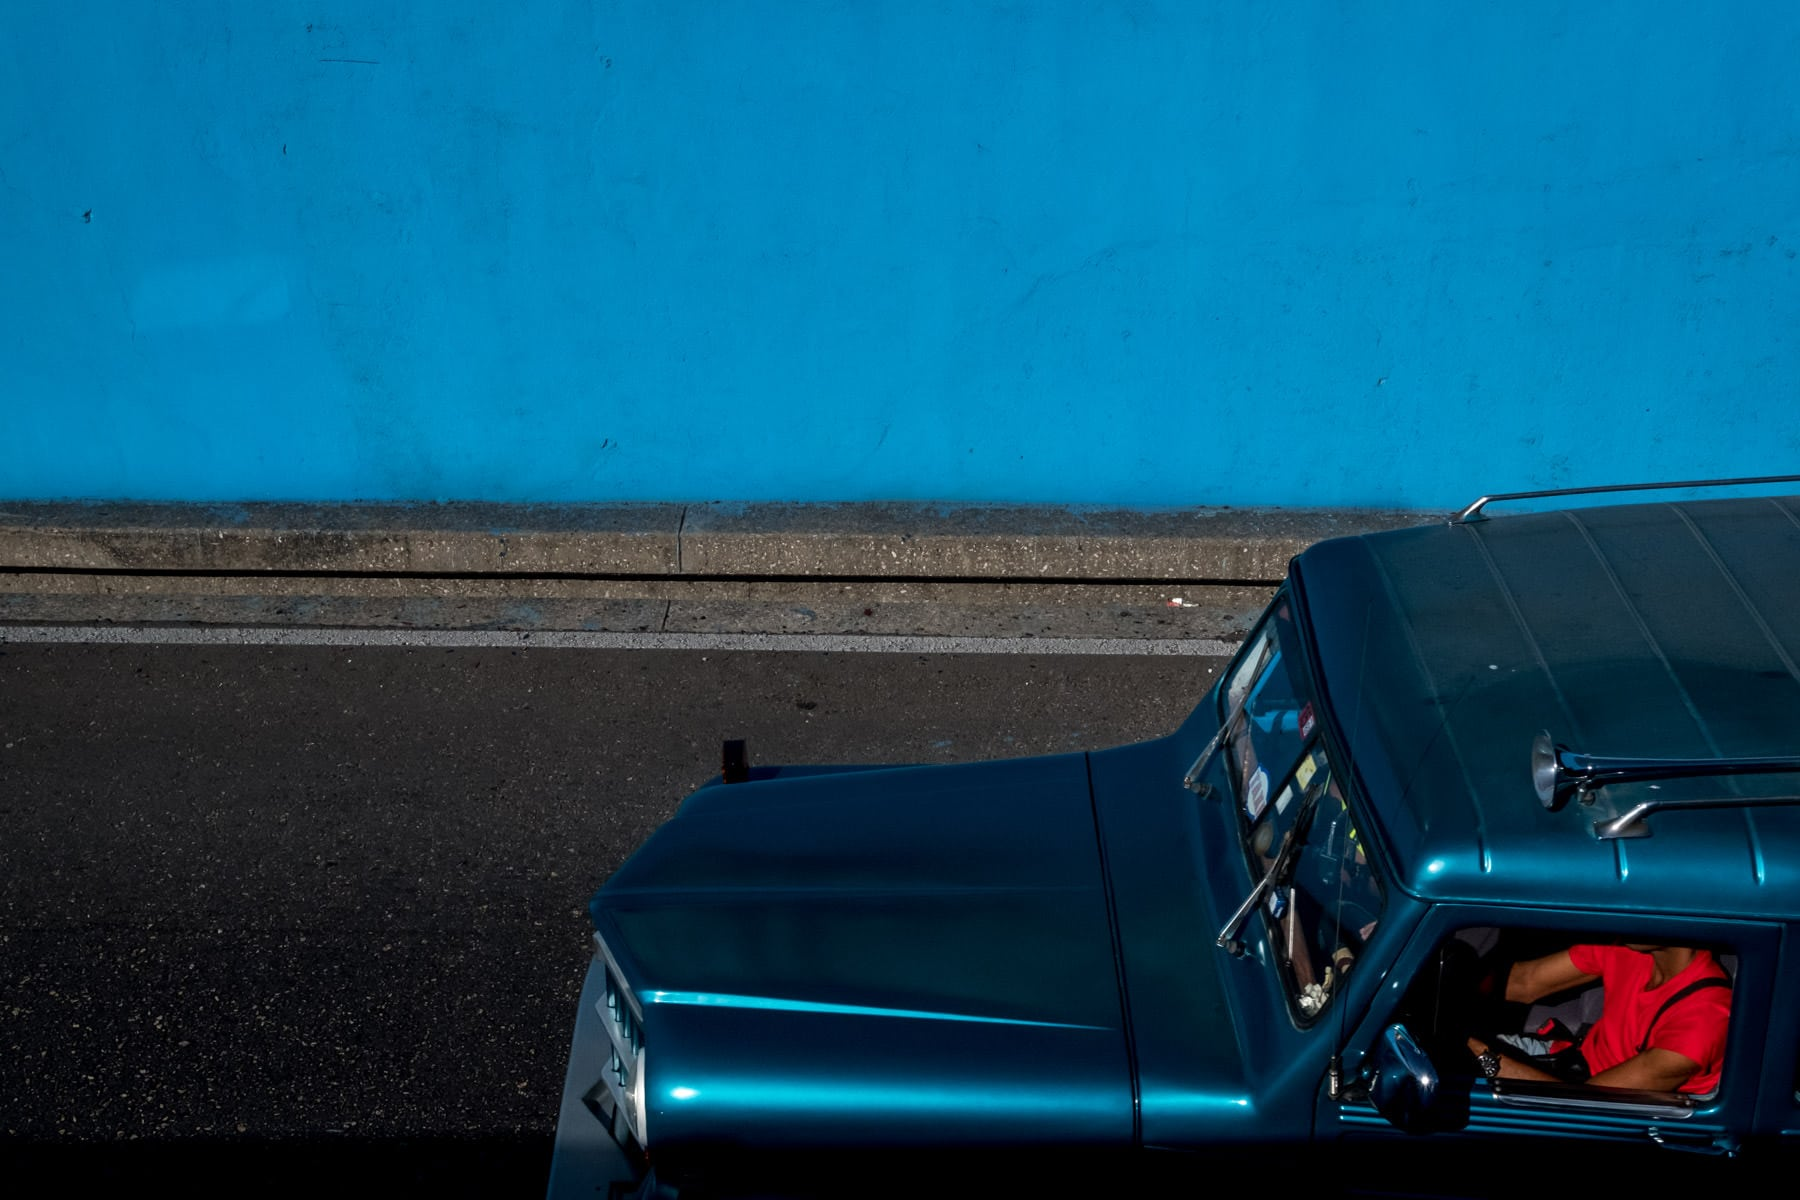 a blue car and man in red tshirt on the streets of Havana